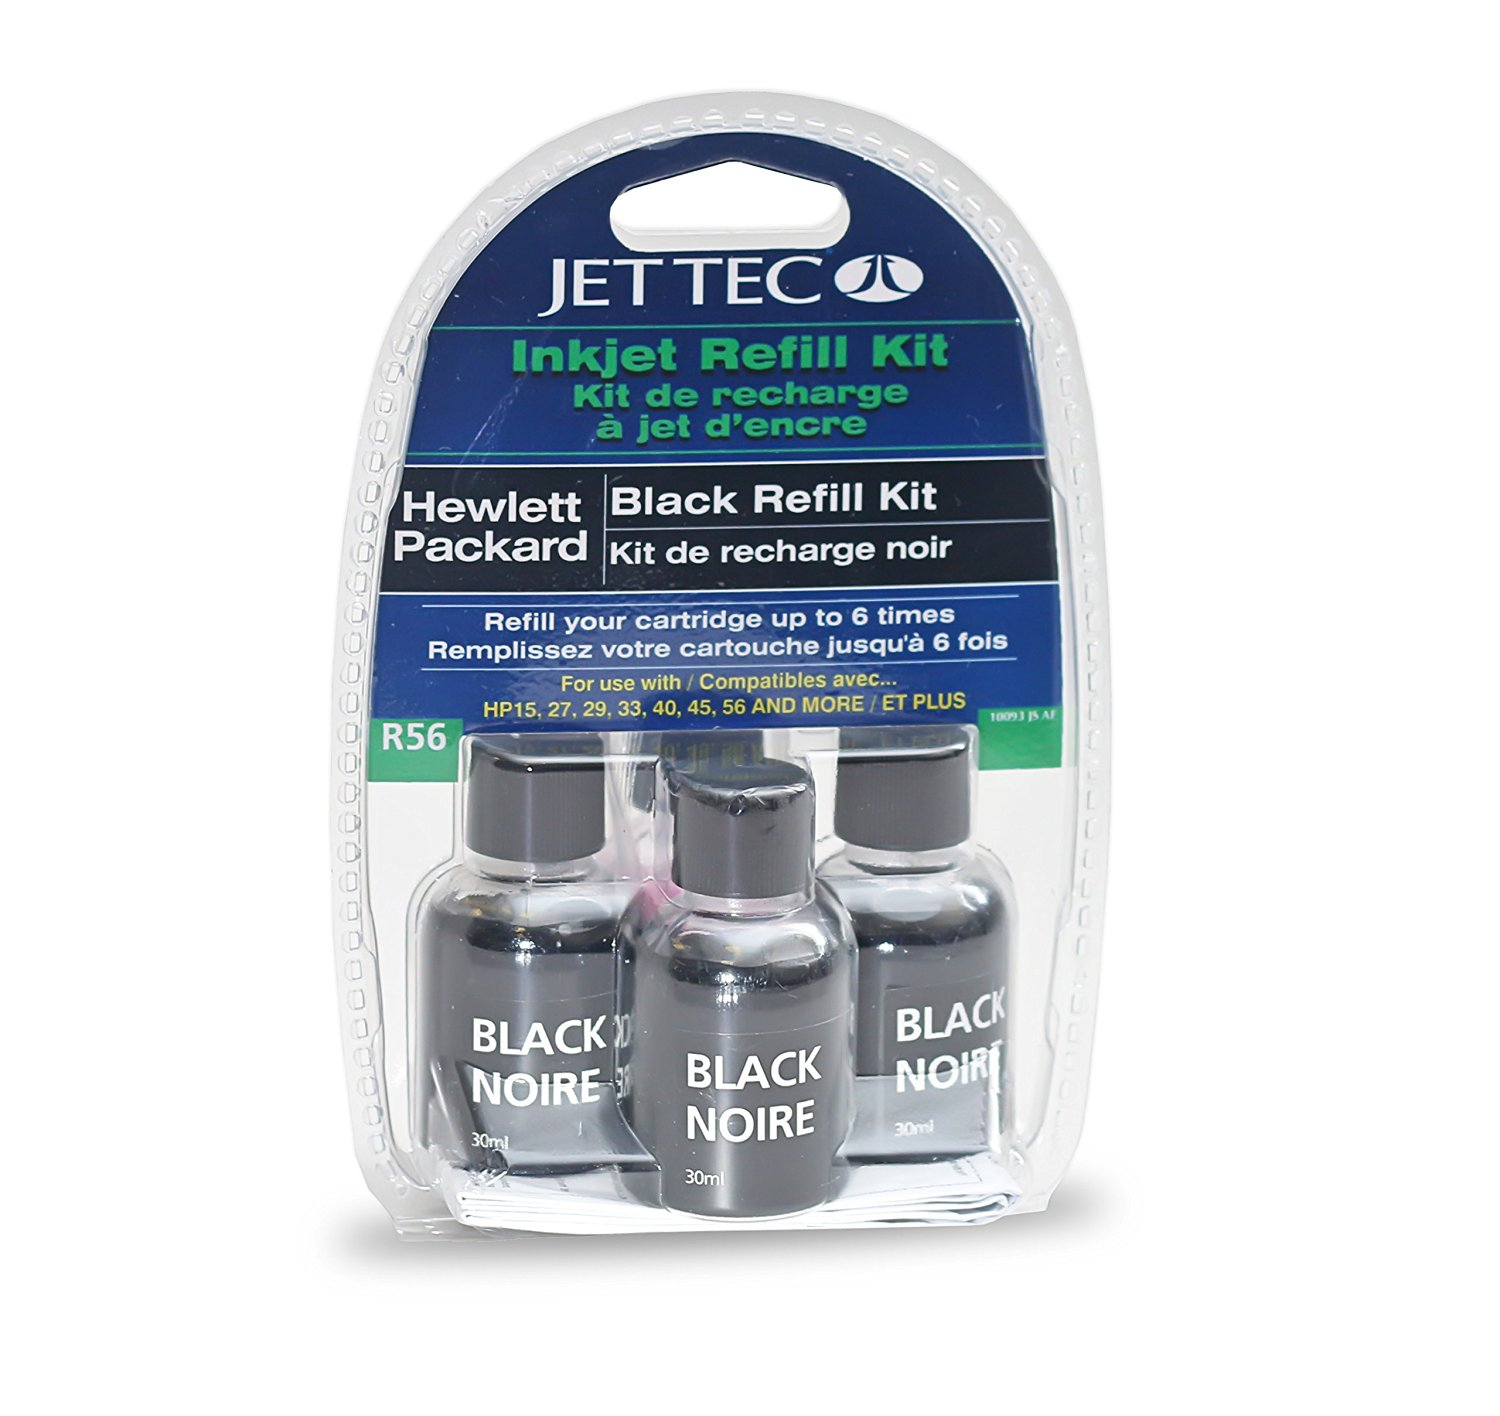 Black Ink Refill Kit for HP 92 98 96 21 27 56 74 60 60XL 61 61XL 901 901XL 564 564XL 920 920XL 950 950XL 930 930XL 940XL 88XL ink cartridge